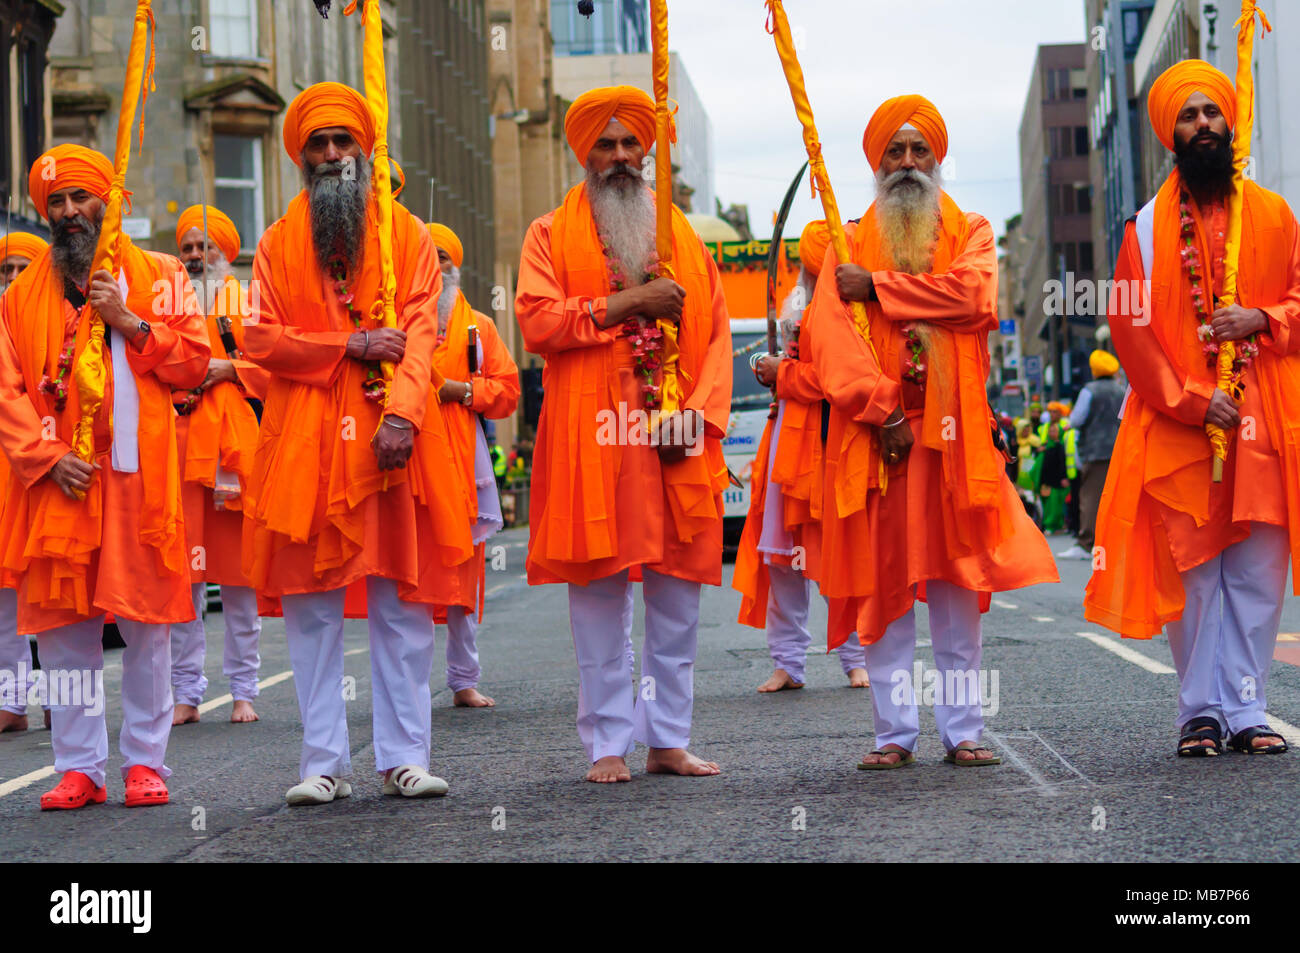 Glasgow, Scotland, UK. 8th April, 2018. The Sikh Festival of Vaisakhi is celebrated with the annual Nagar Kirtan, a spiritually centred community procession through the city. Today Sikhs participate in Seva which is selfless service. Each Gurdwara in the city provides Langar, a free community meal served to all visitors regardless of race, religion or social status, demonstrating the Sikh values of equality, humanity, justice and compassion. Credit: Skully/Alamy Live News Stock Photo